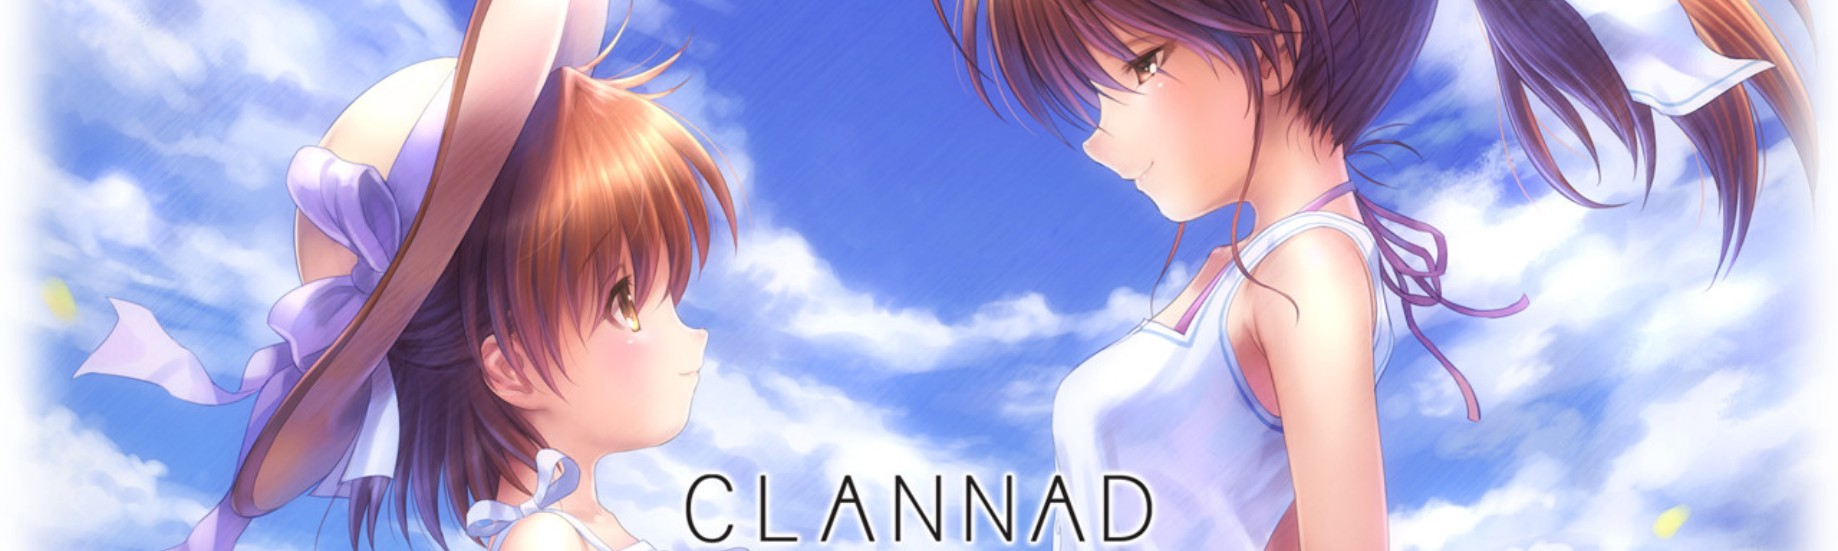 Clannad The Meaning Of Family Clannad Is A Game Adapted Anime